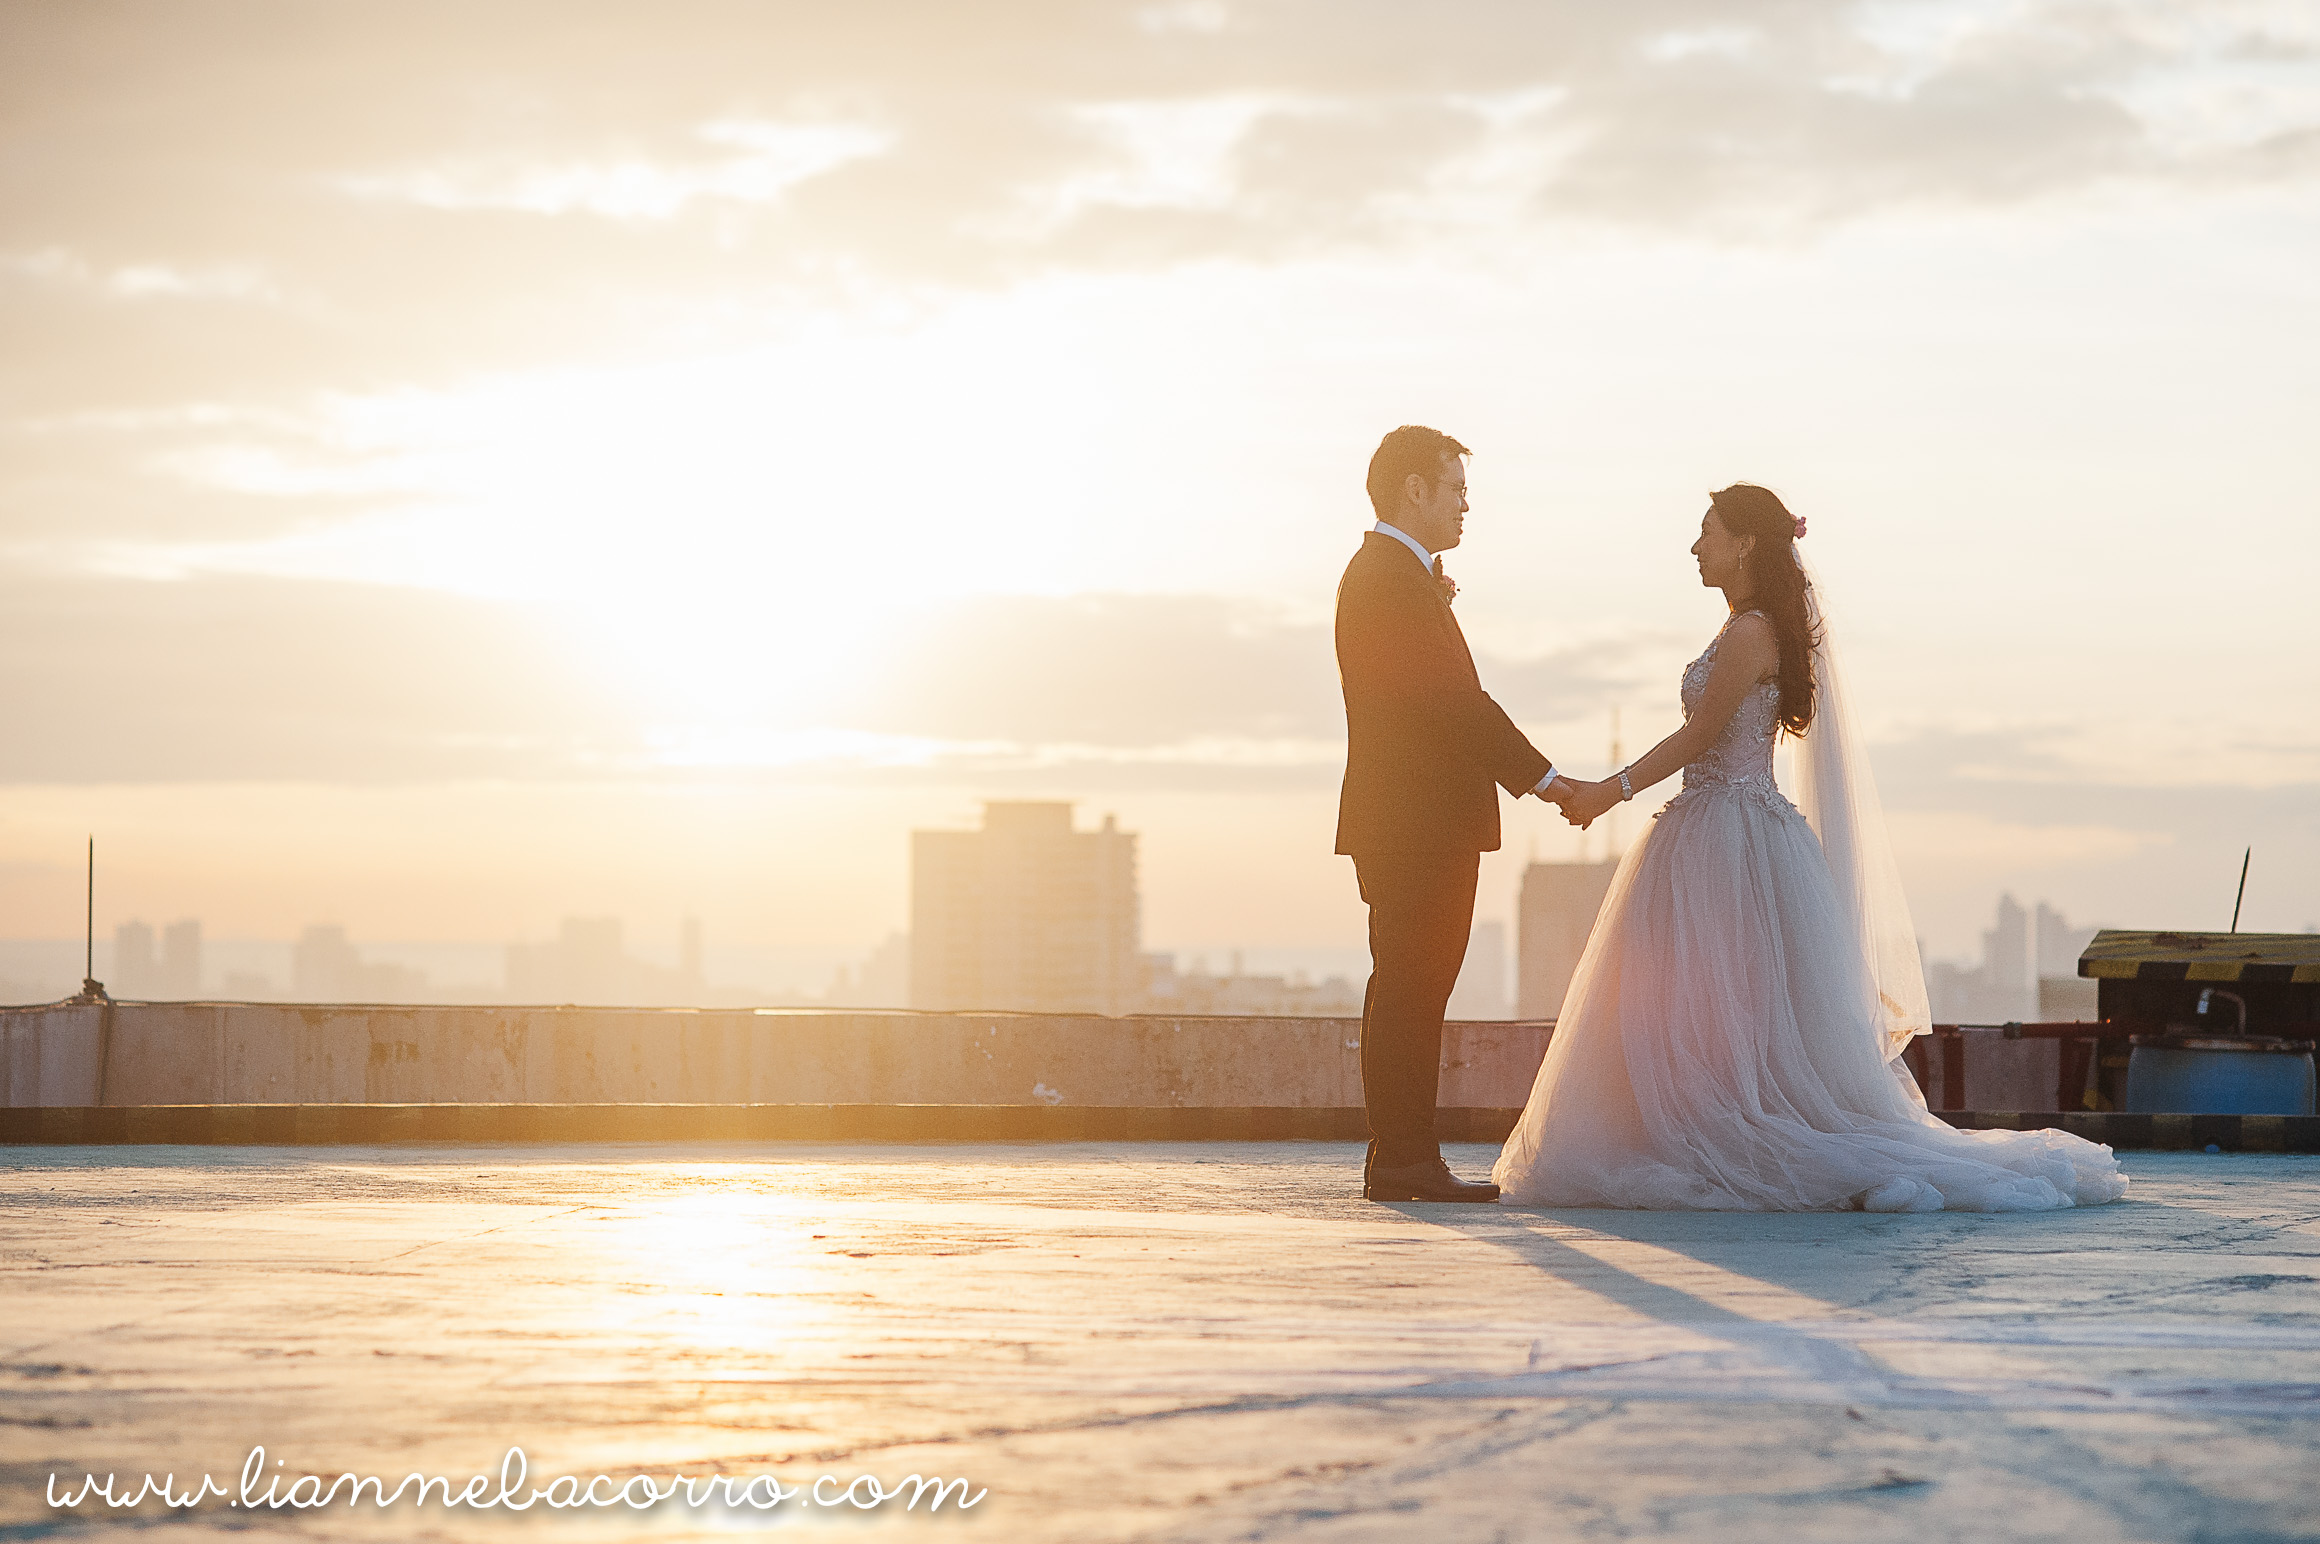 Dem and Kyra - Wedding Photography by Lianne Bacorro - Dan Rivera Photography-53